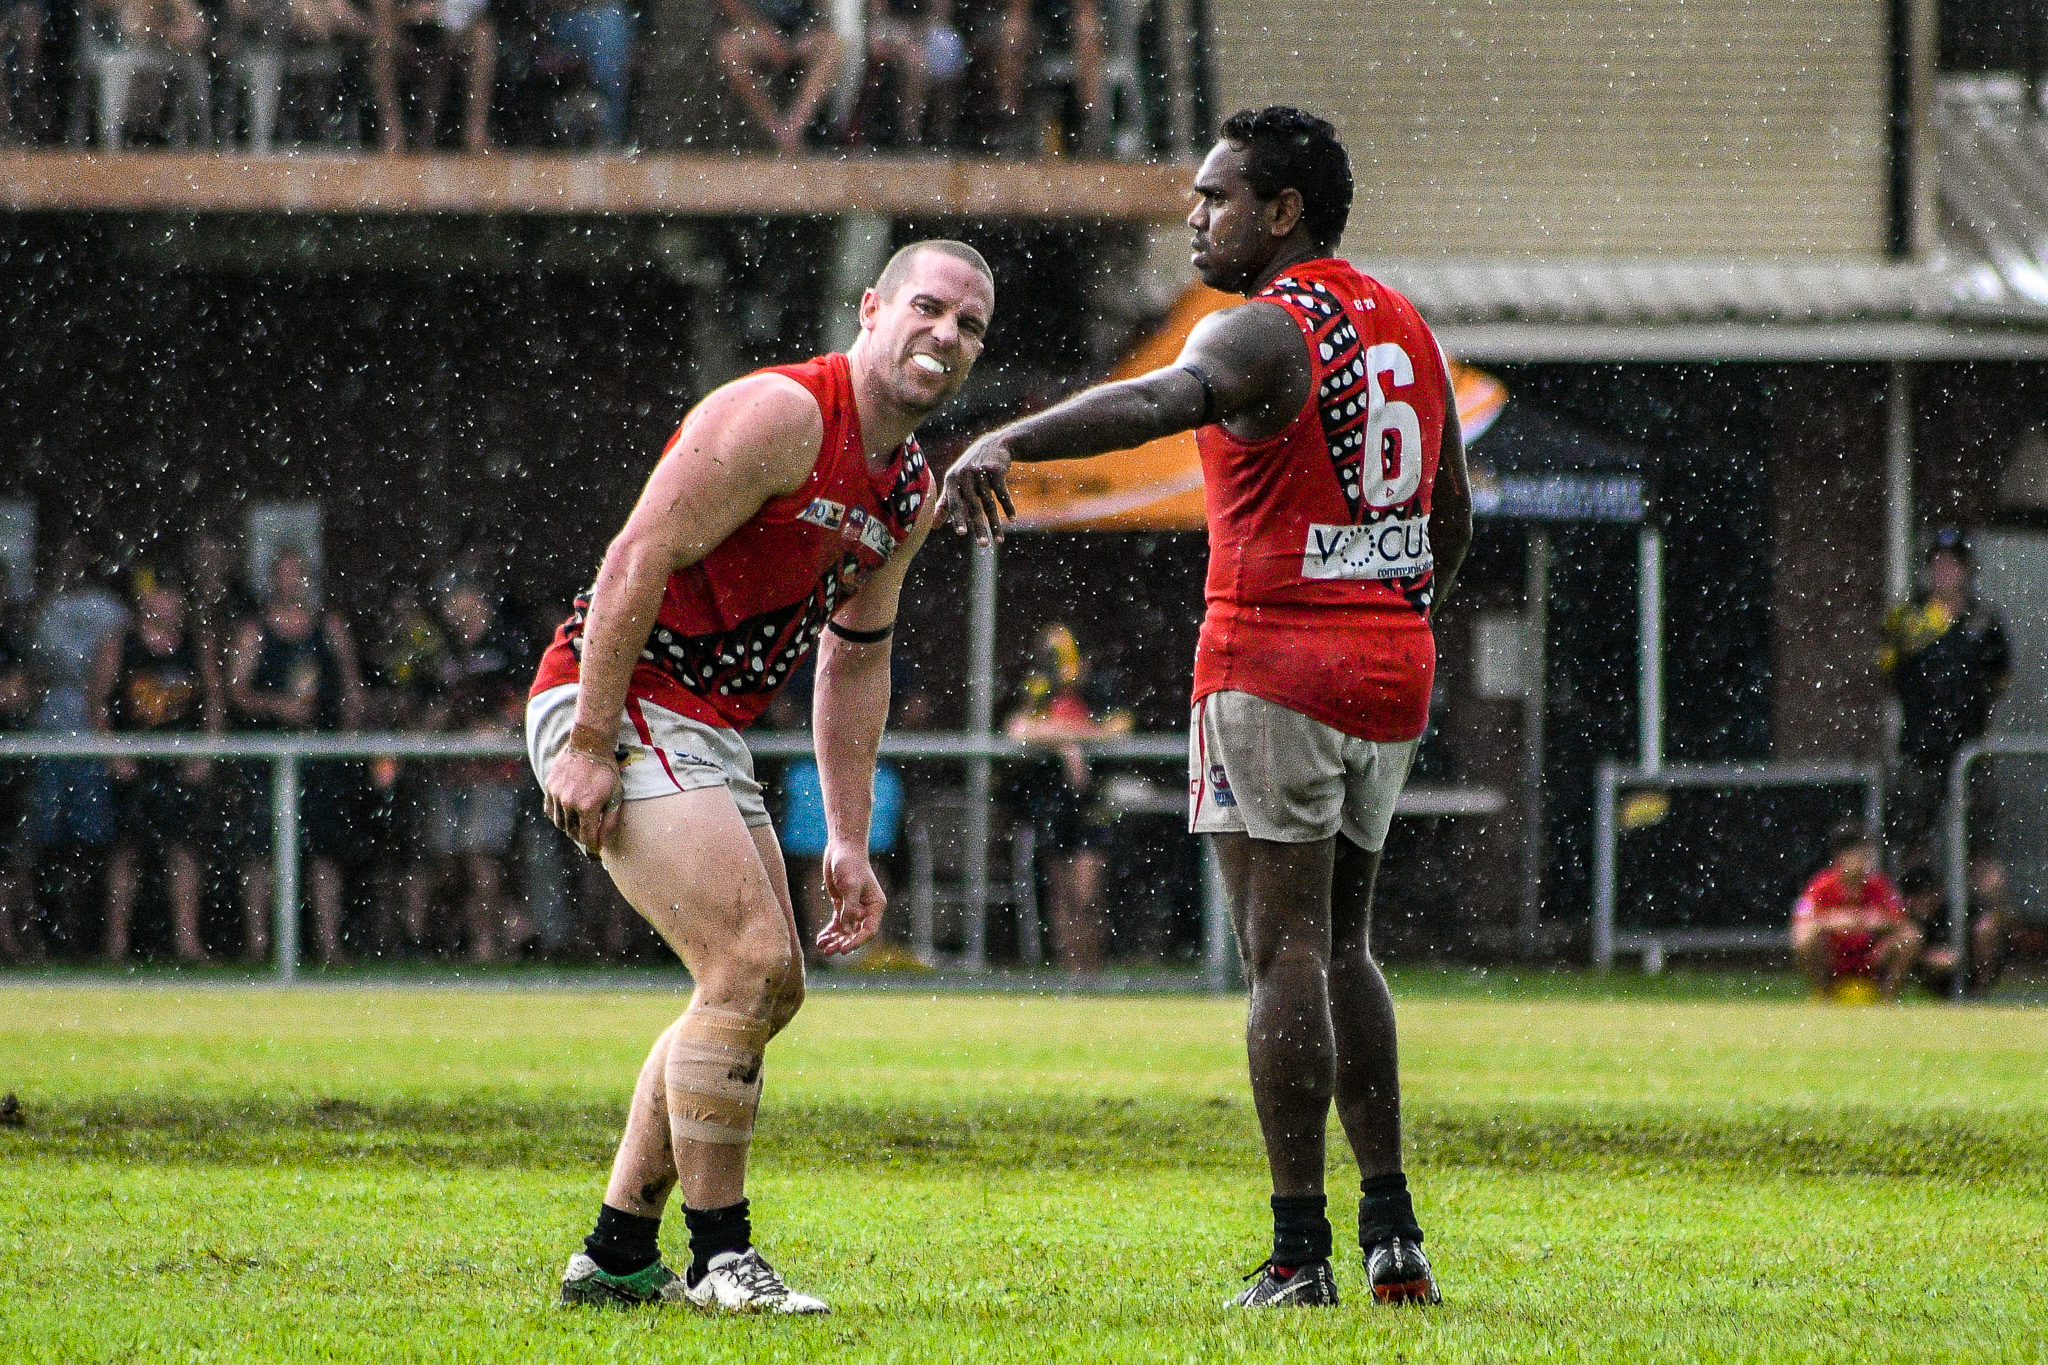 Hams limps after copping a knock against Nightcliff. Skipper Paddy Heenan looks unconcerned.